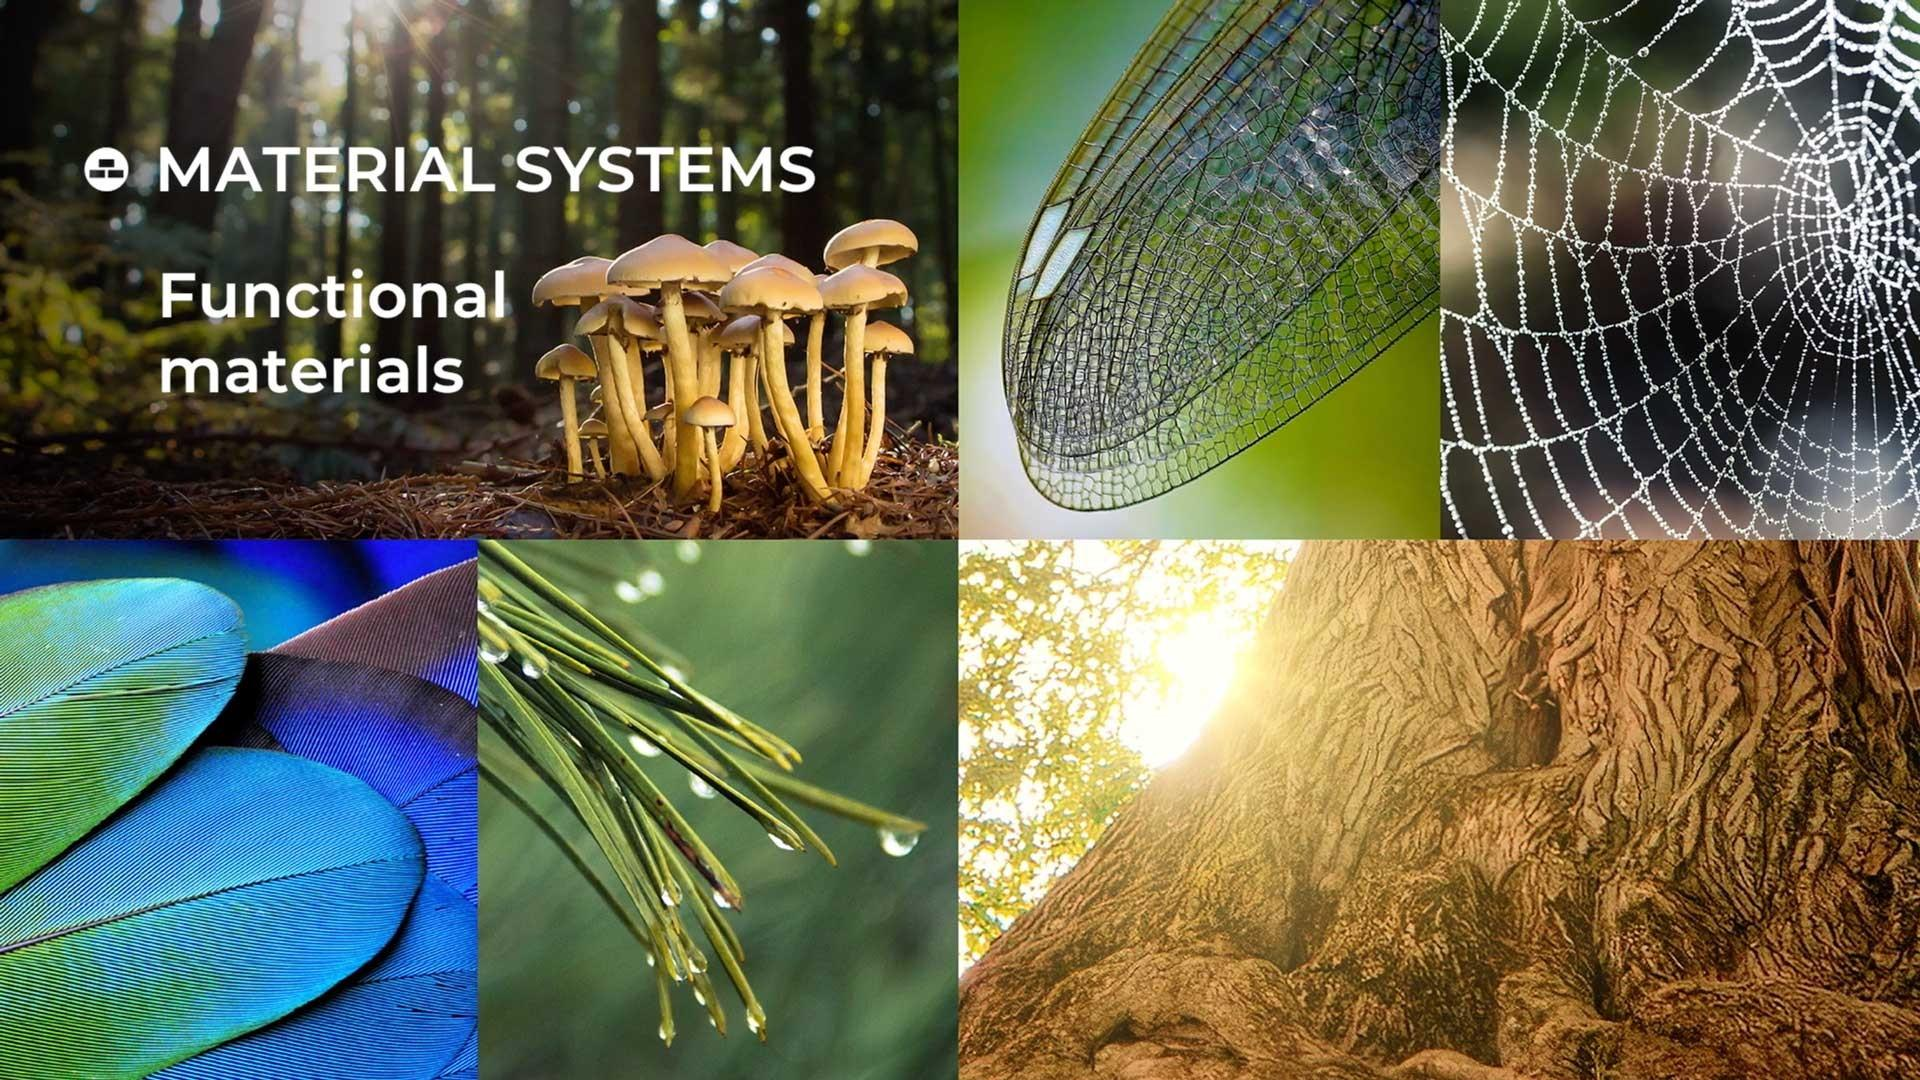 biomimicry examples found in nature